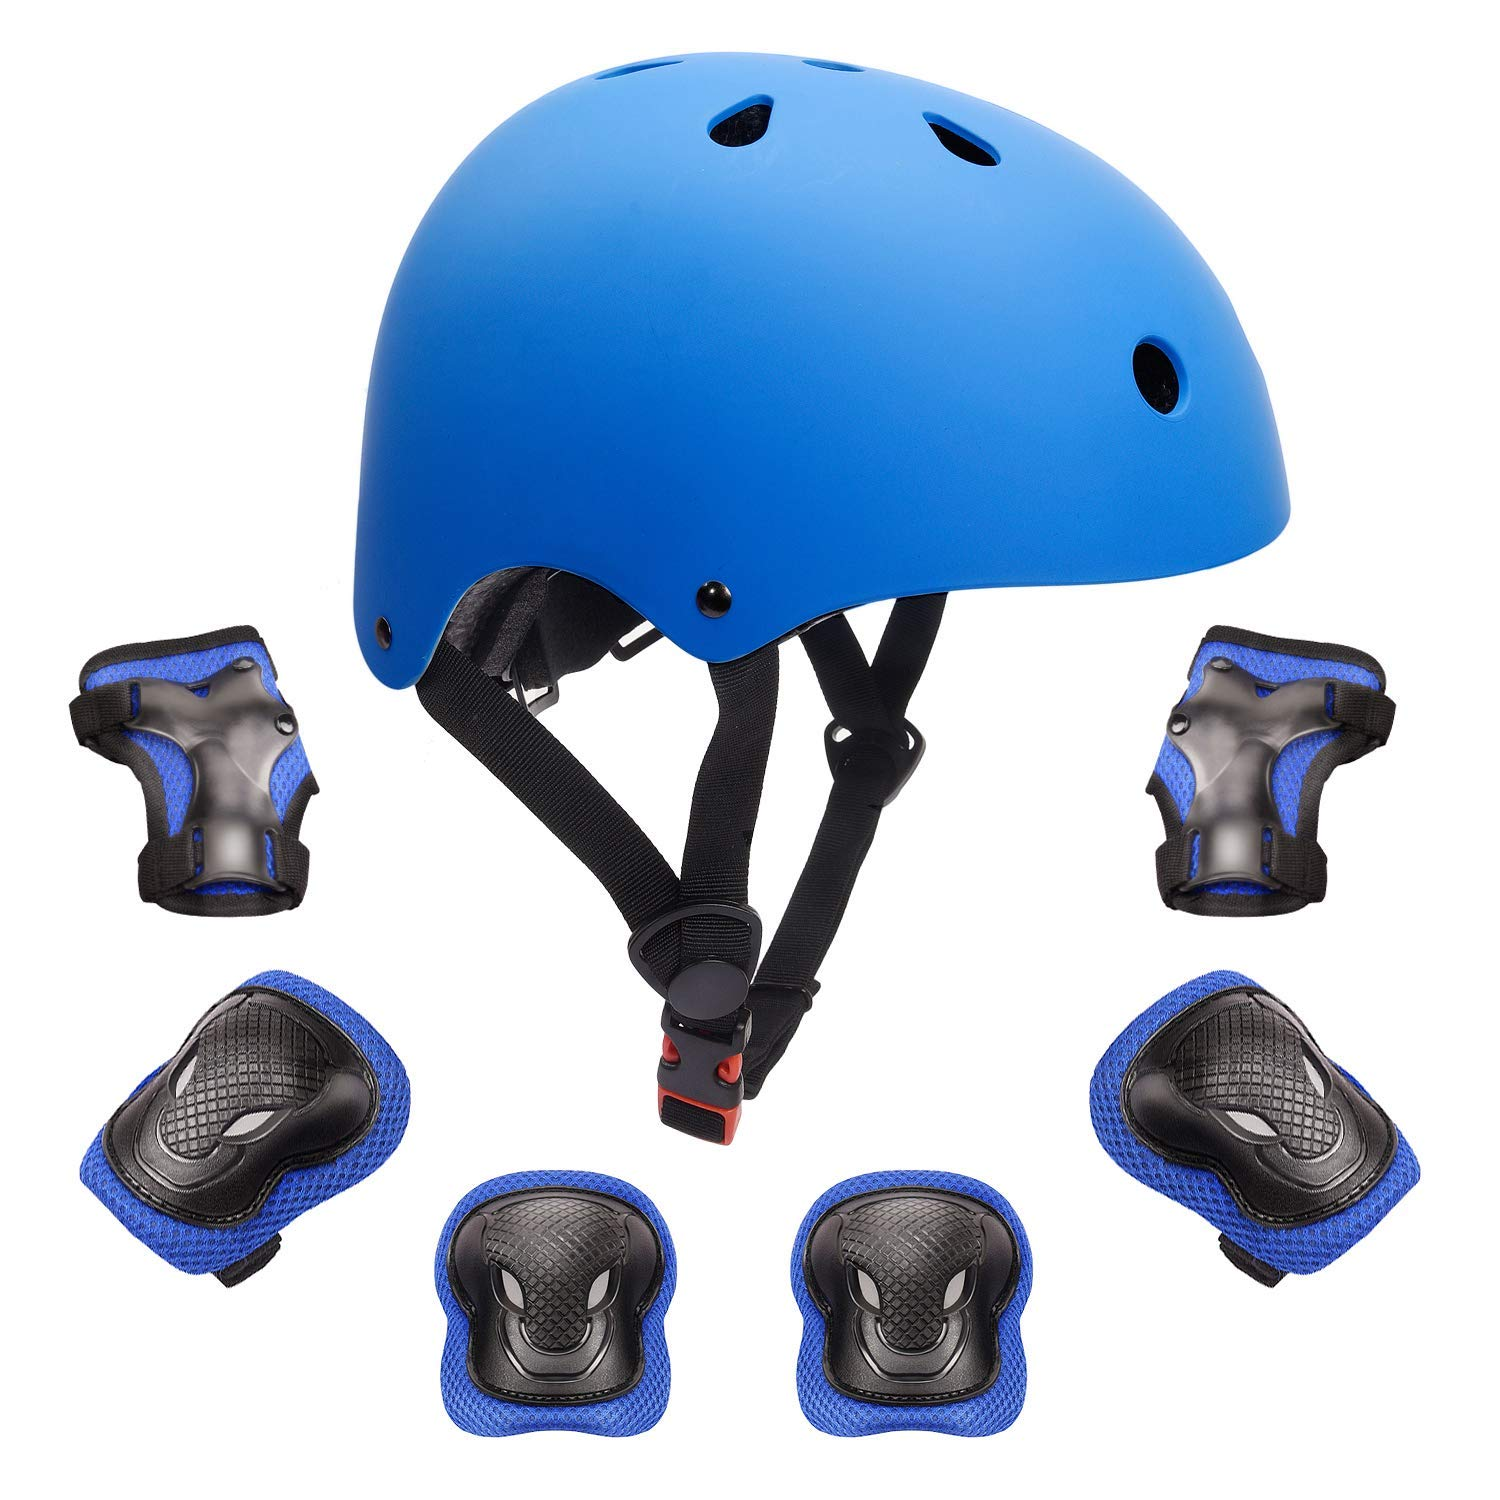 Kids Children Girls Bike Cycling Protective Scooter Skate Roller Safety LM